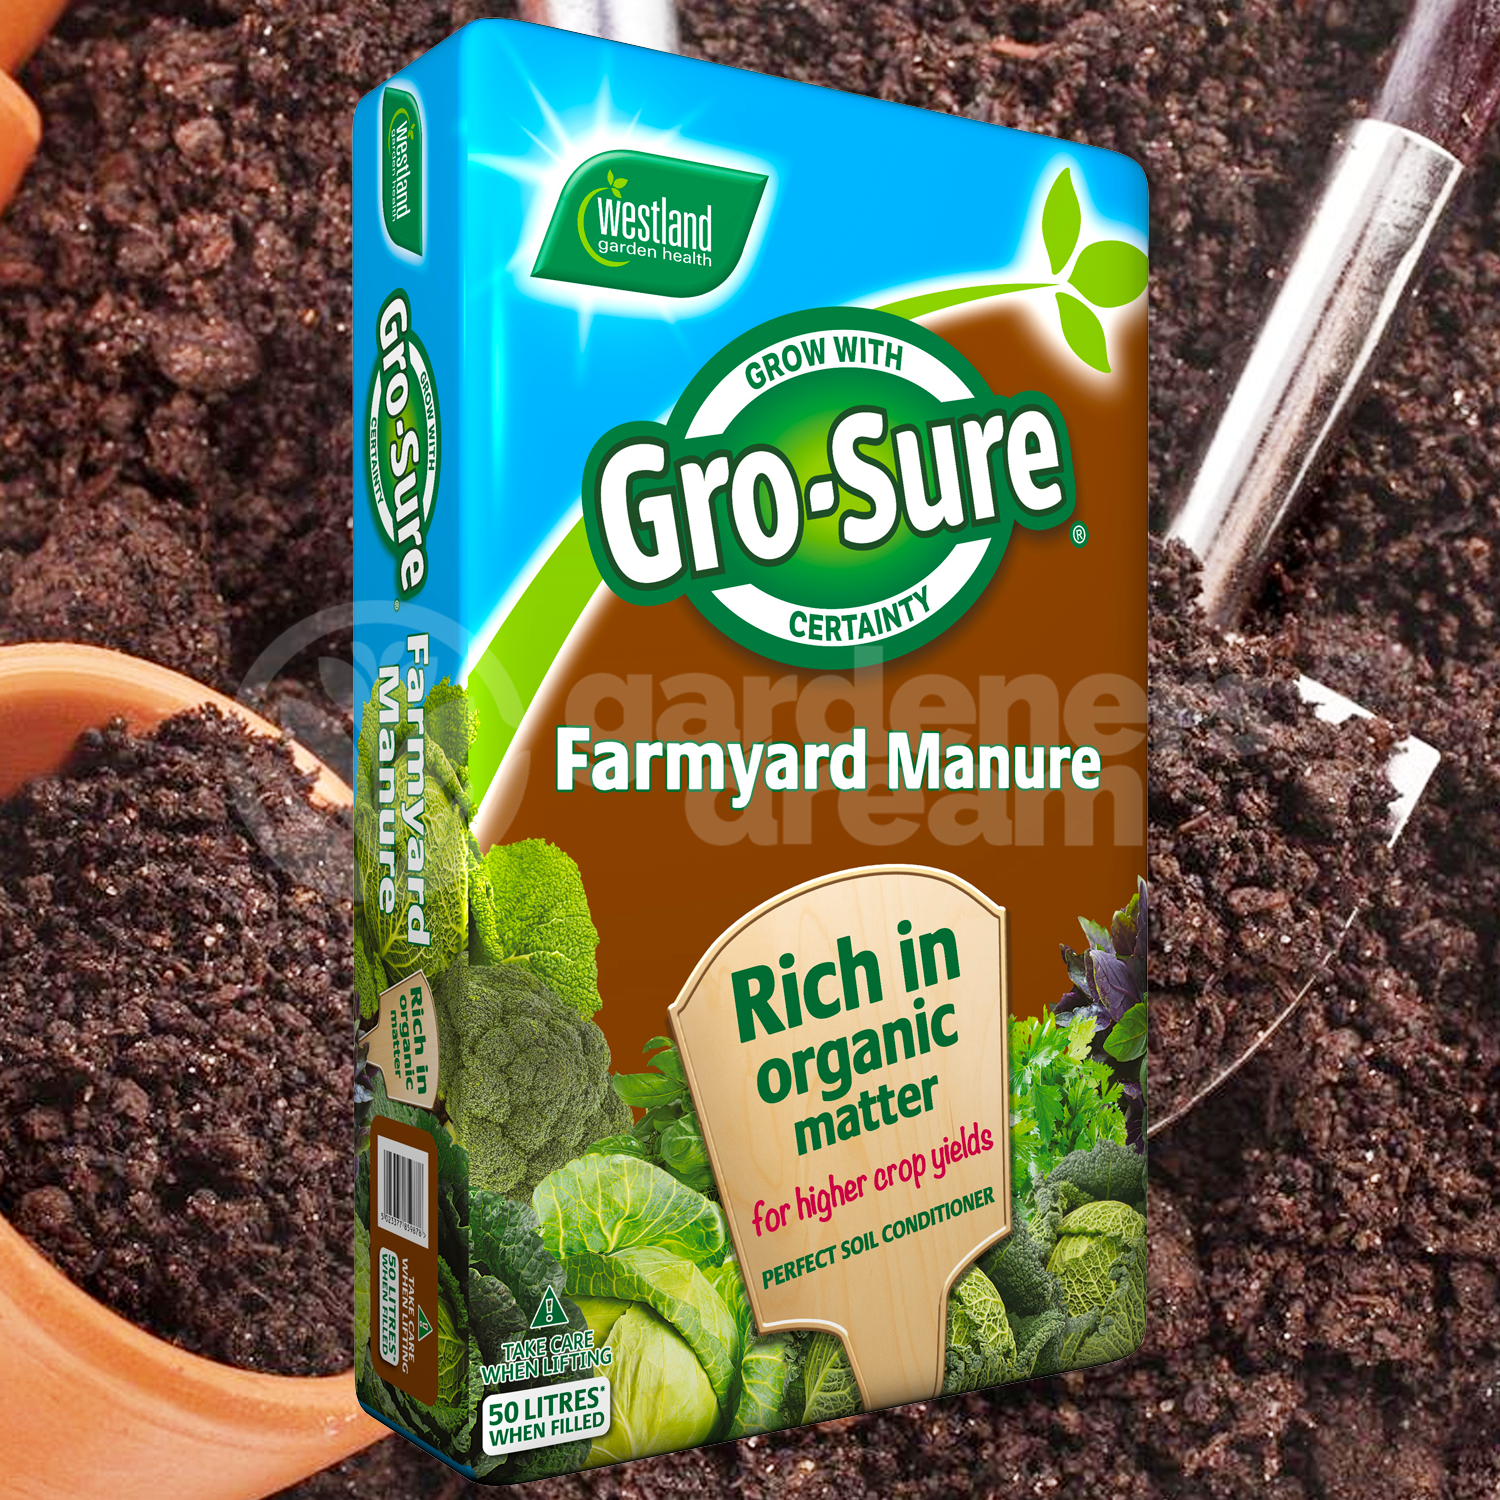 Image for westland multi purpose compost with john innes 50l from - Westland 50l Farm Yard Horse Manure Multi Purpose Soil Conditioner Fertiliser